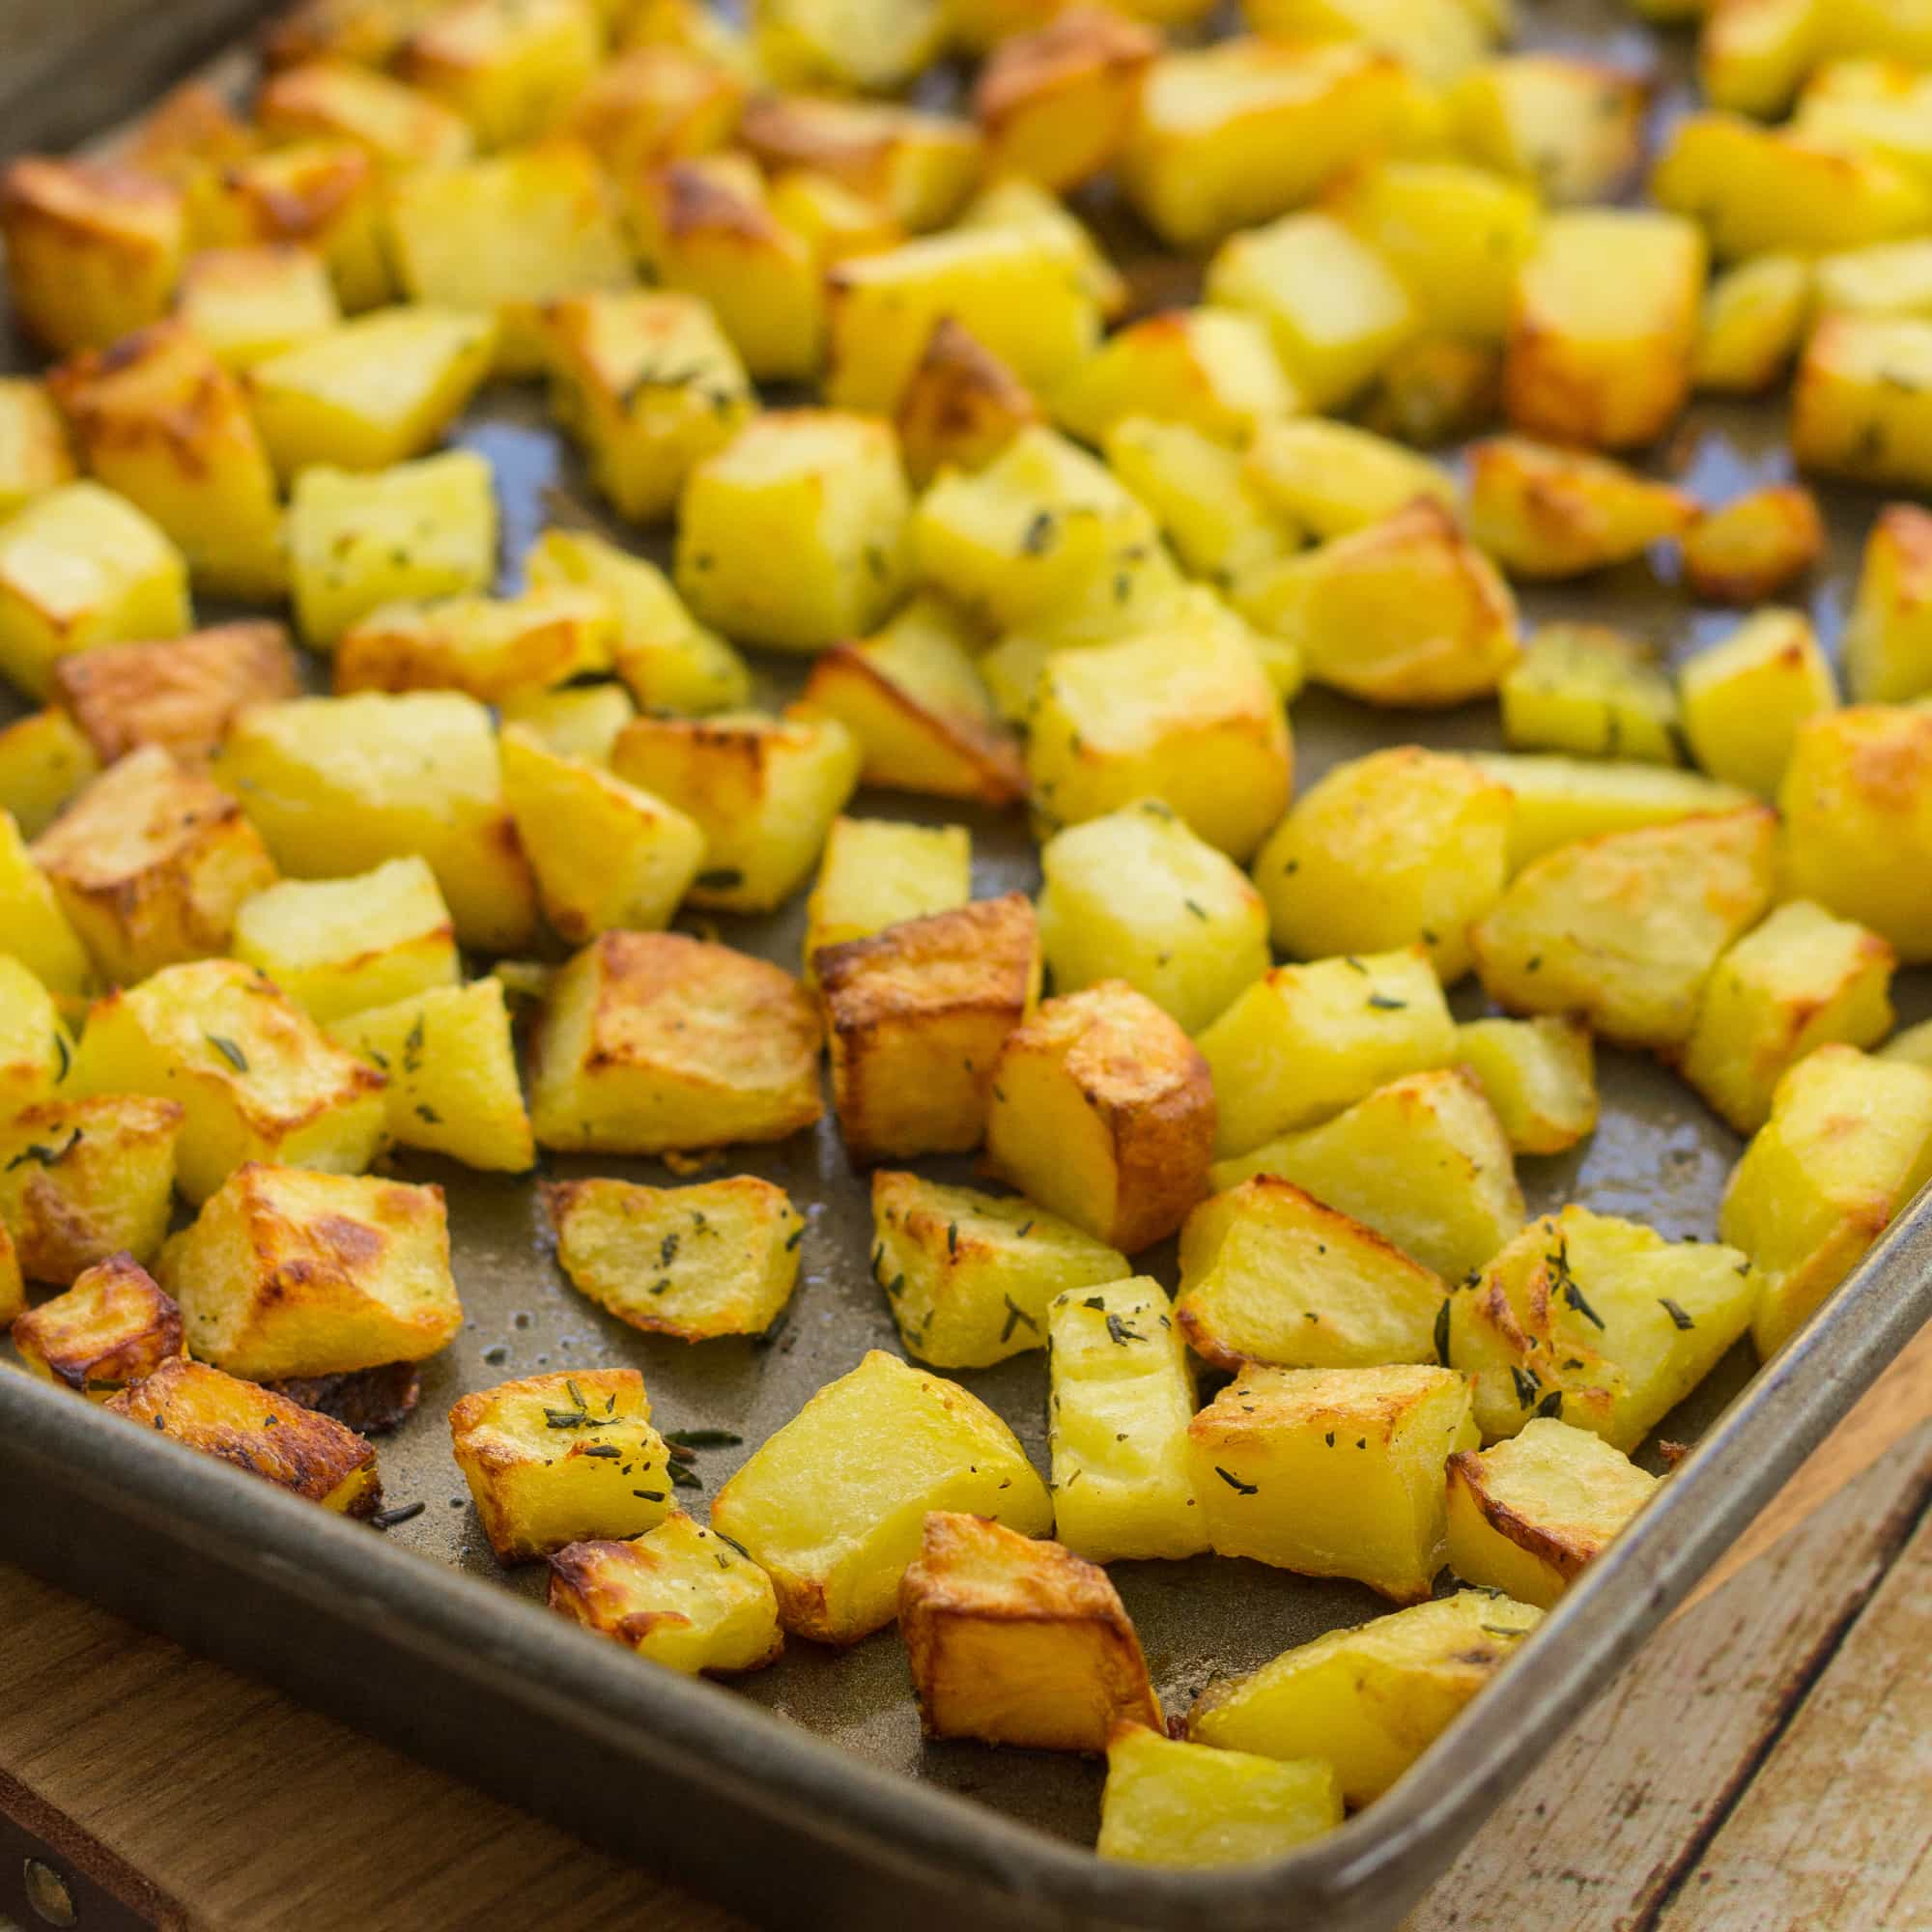 30 Stress Free Easy Camping Food Ideas Your Family Will: Easy Homemade Parmentier Potatoes